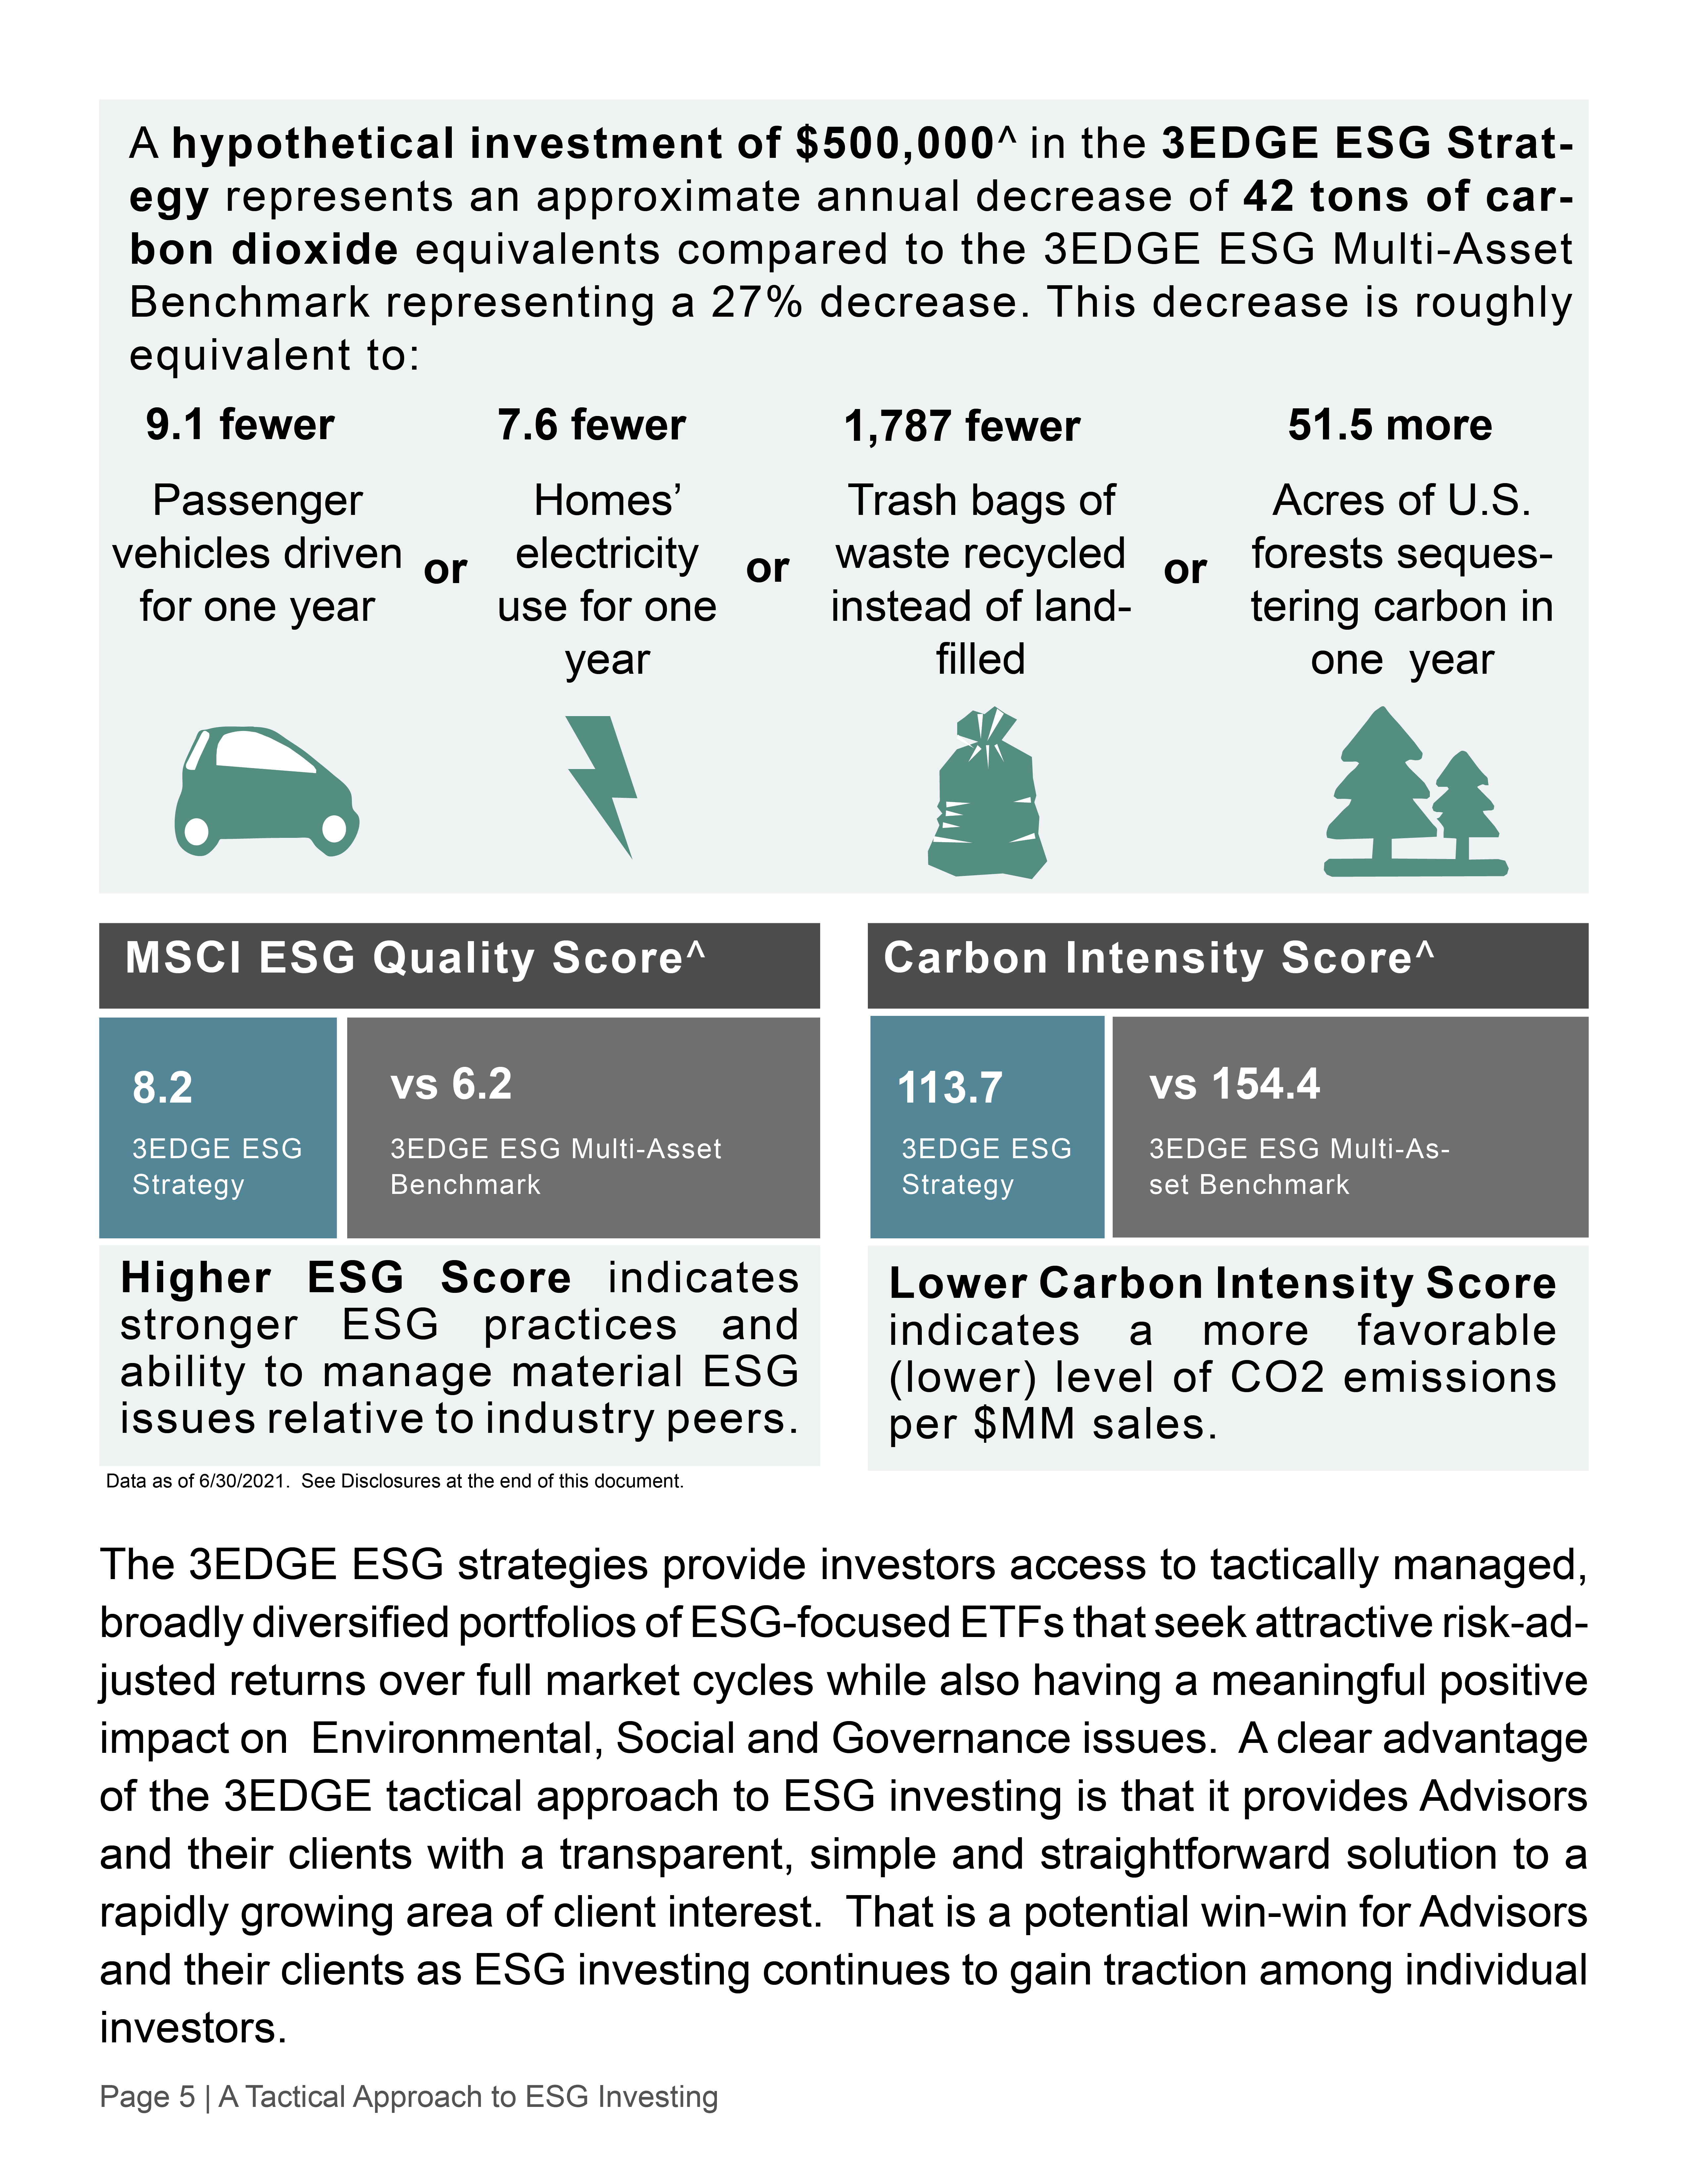 A Tactical Approach to ESG Investing5